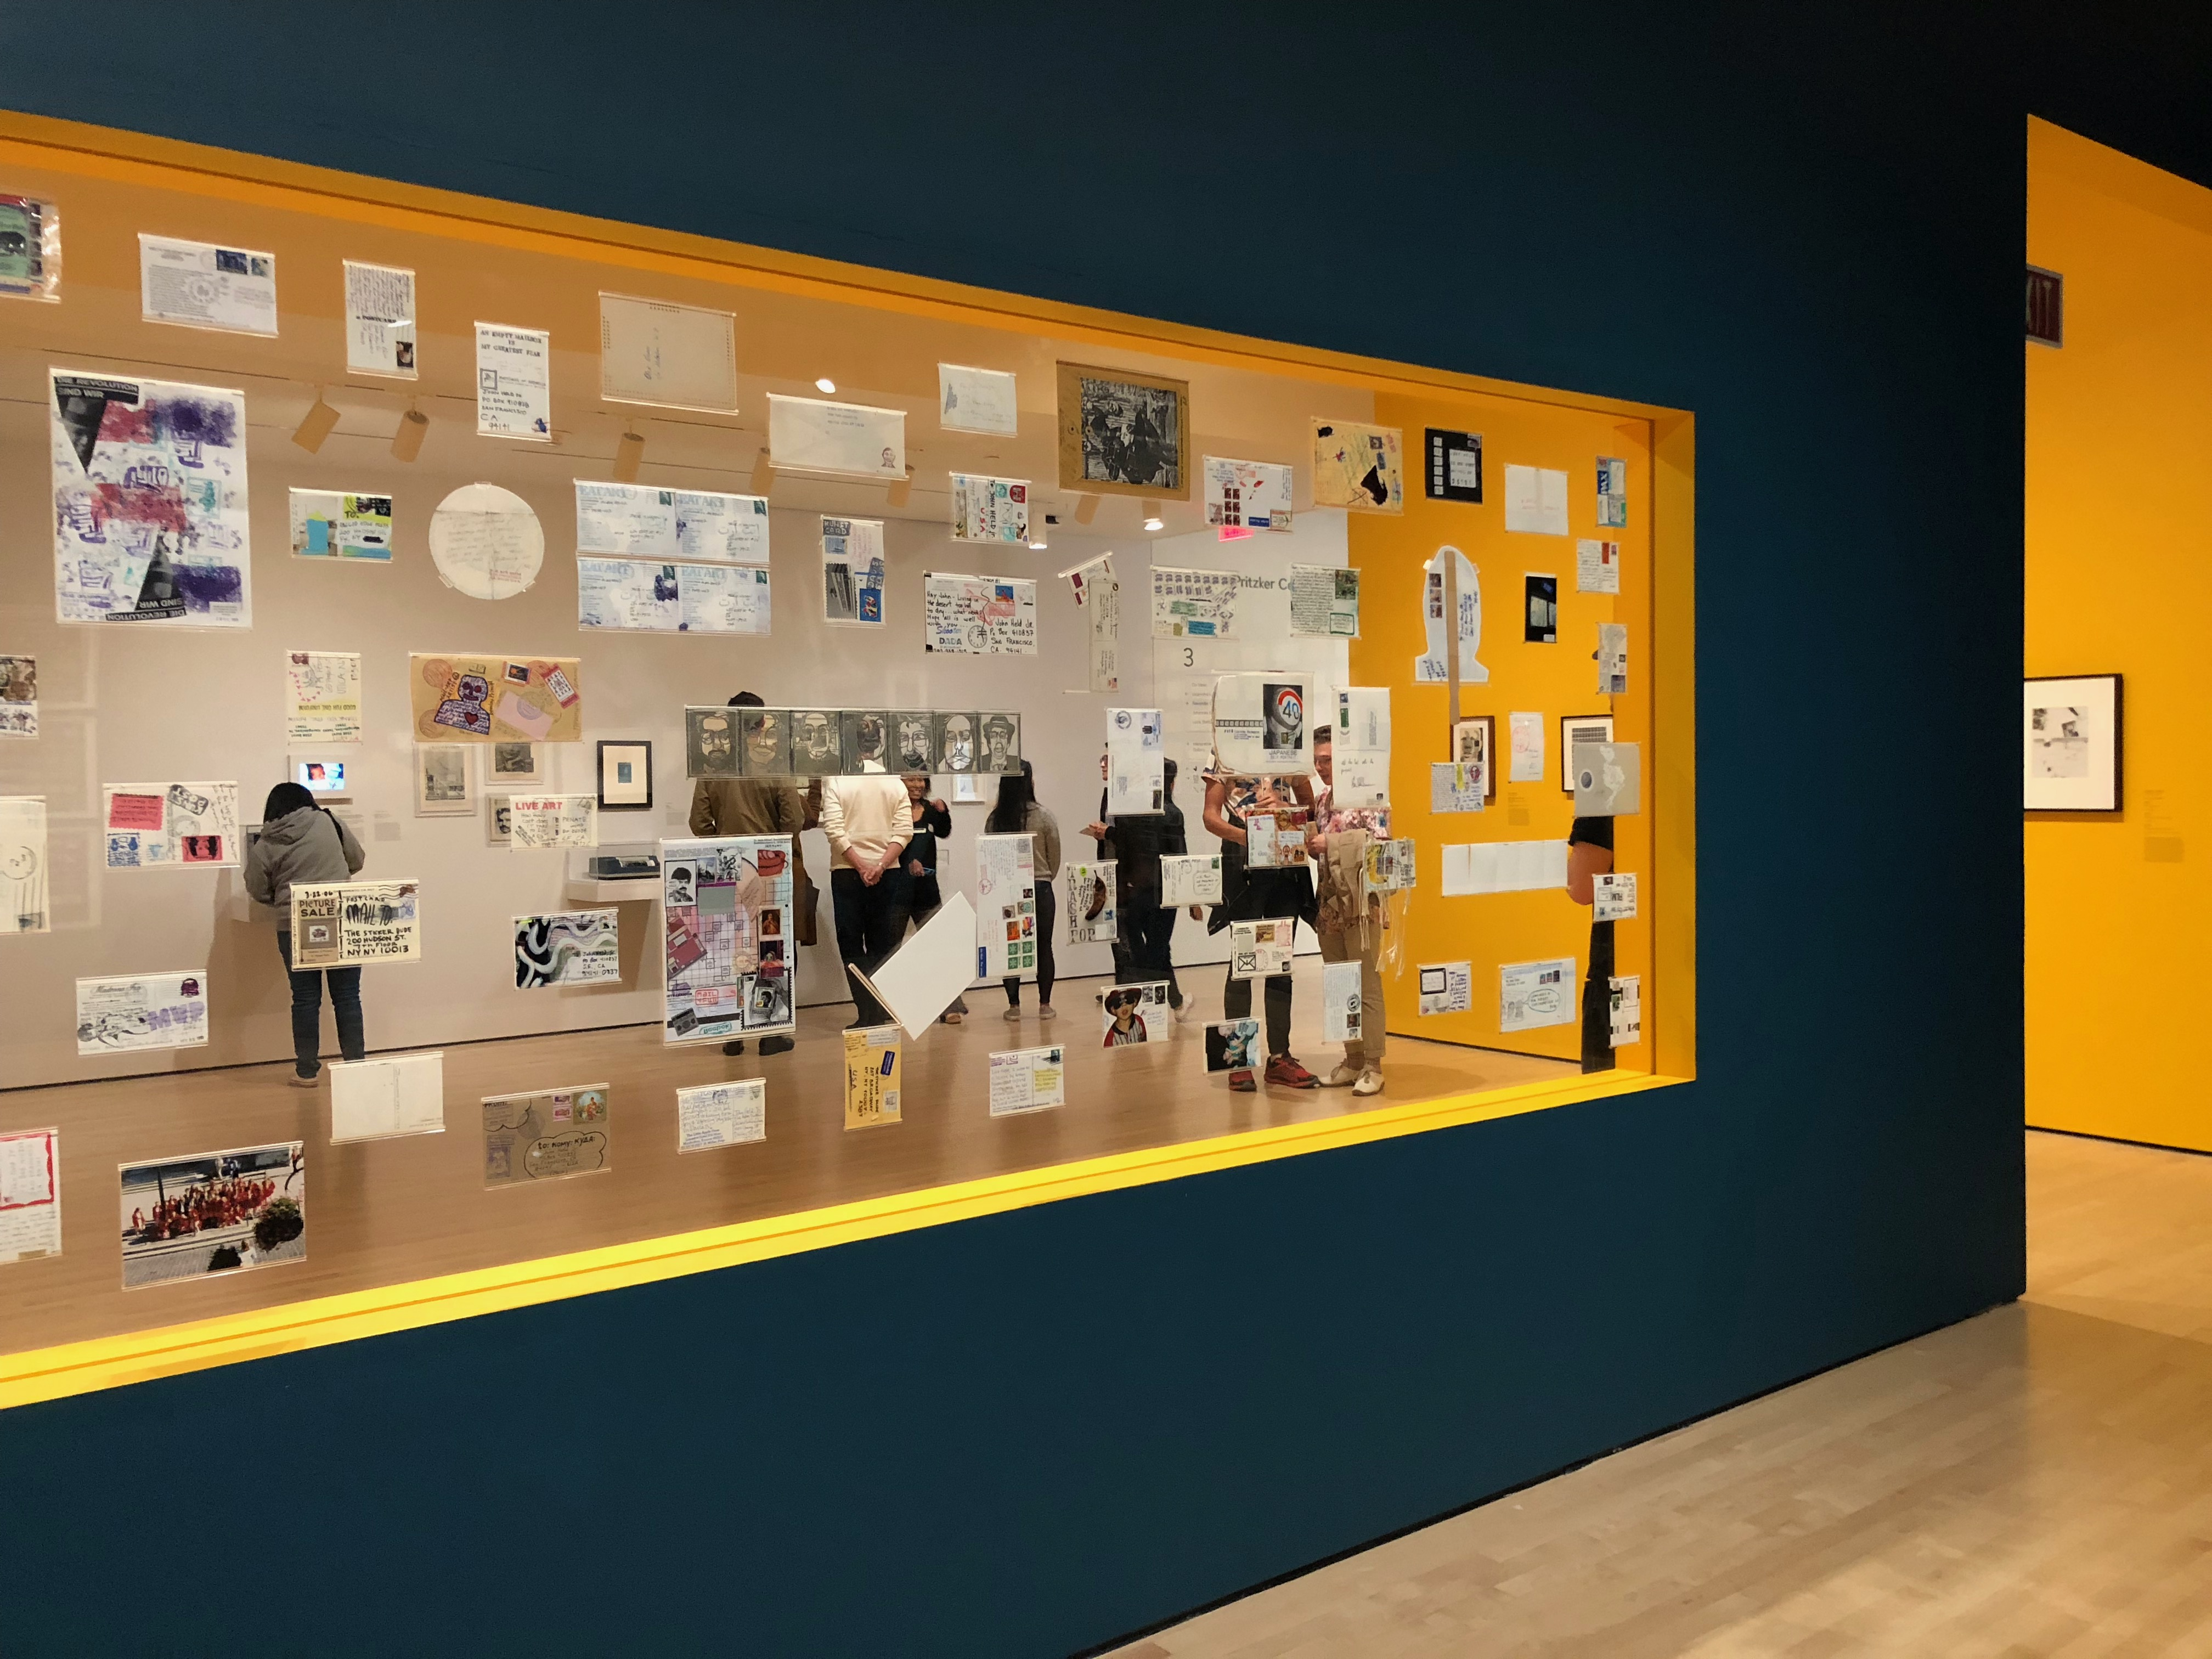 SFMoMA's exhibition on snap and share